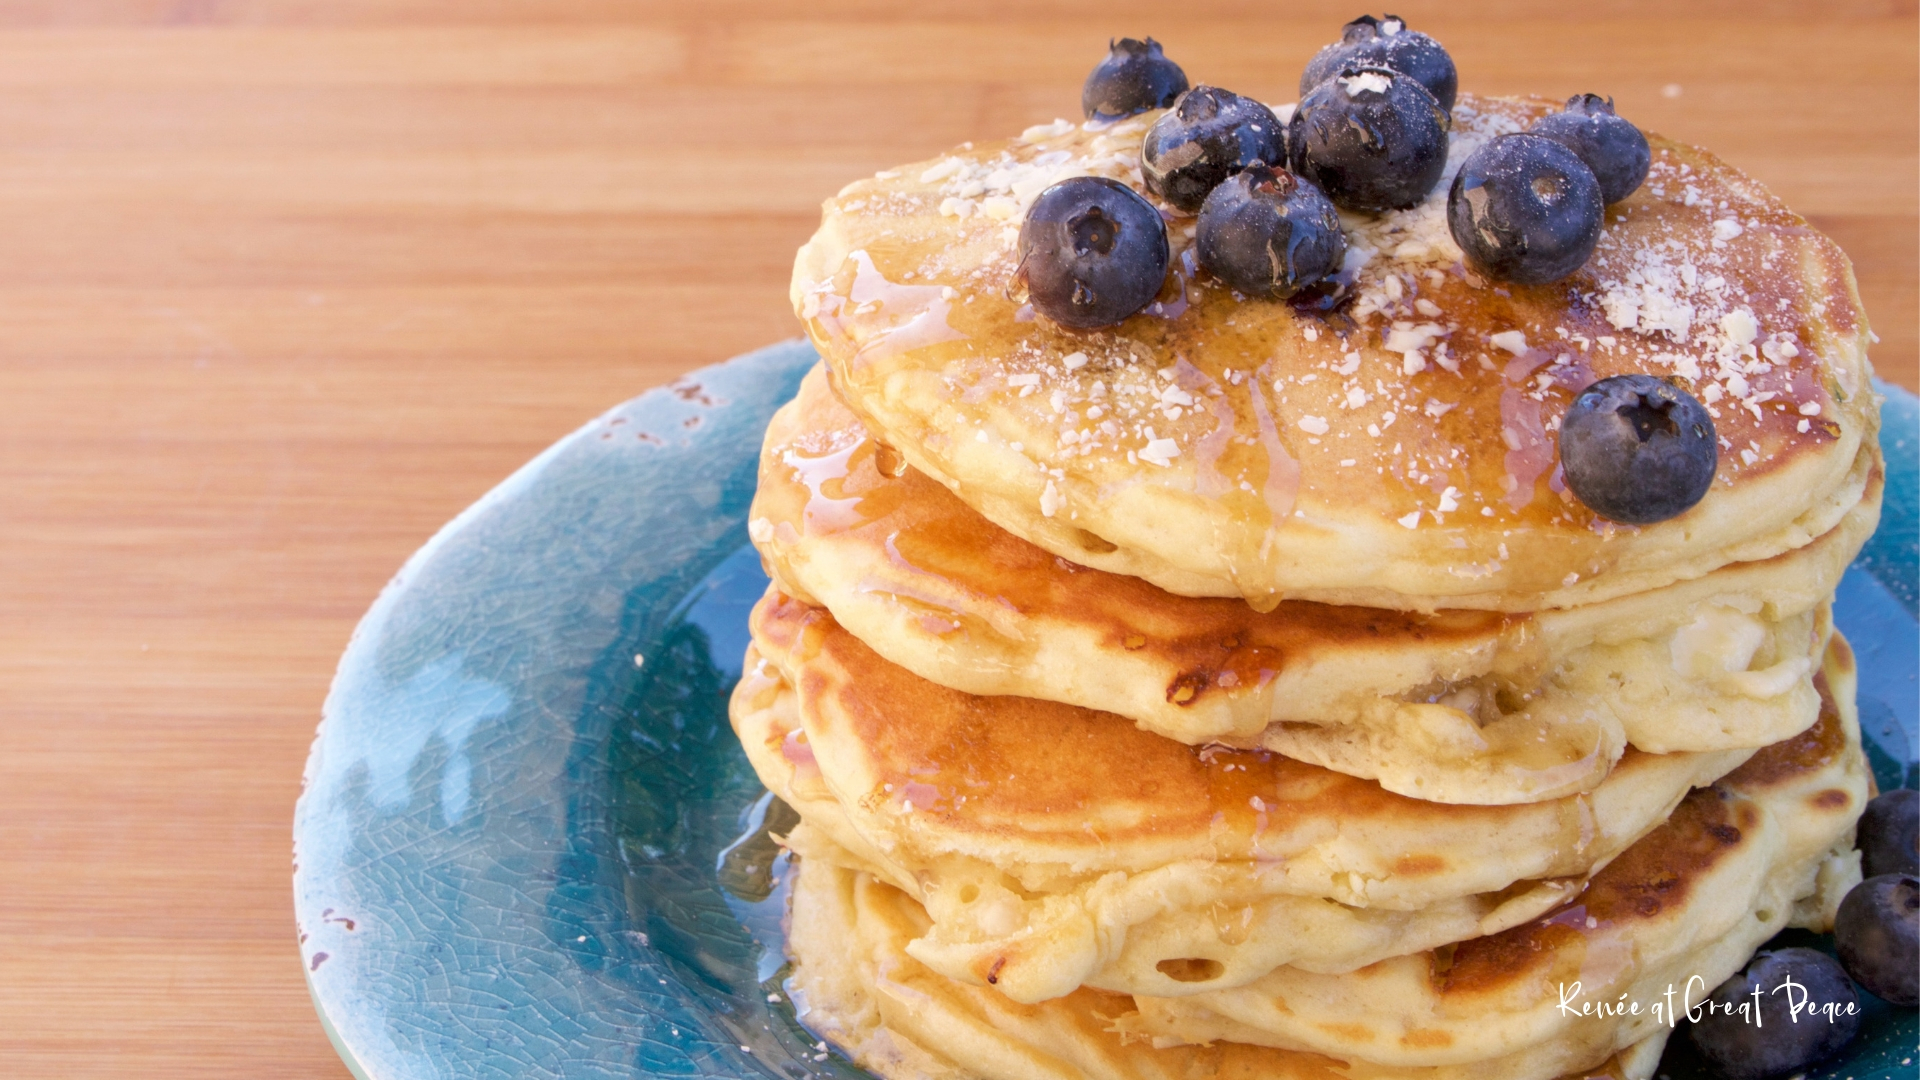 Blueberry Pancakes with White Chocolate